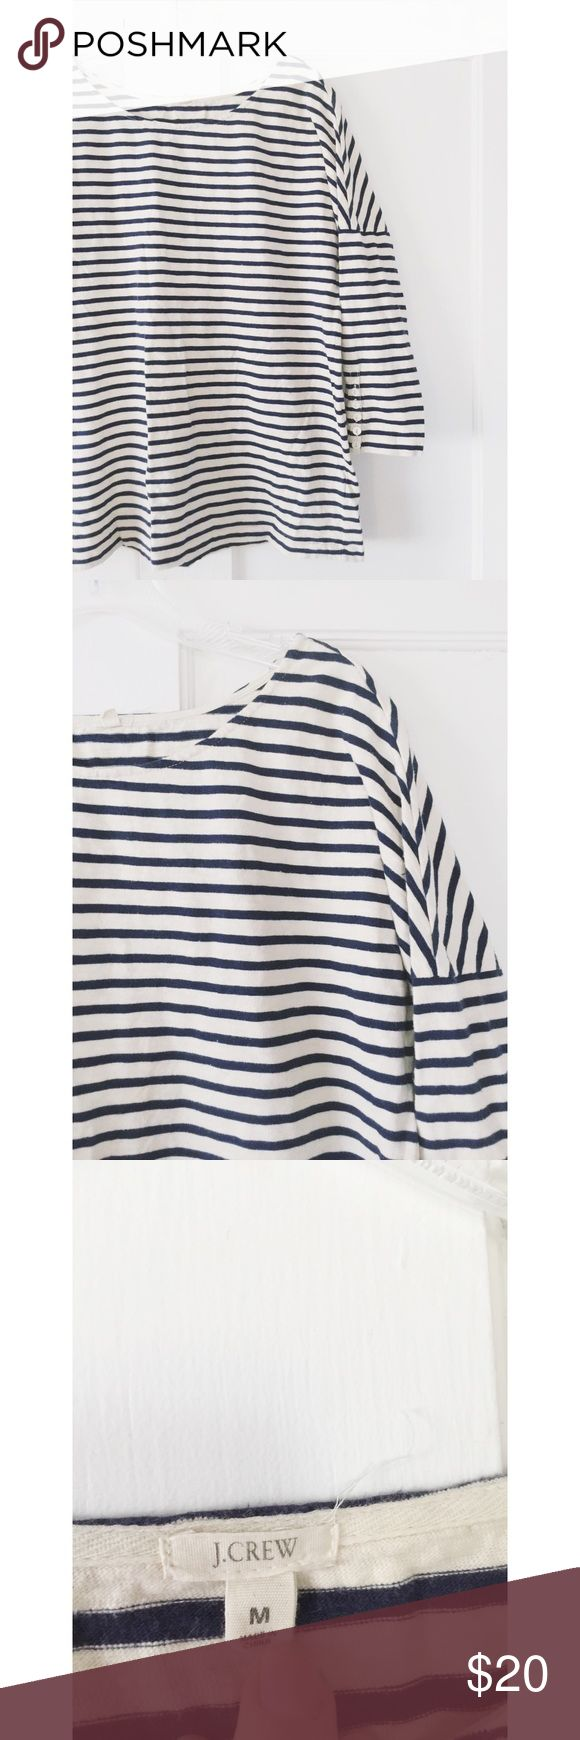 J. Crew Nautical Top J. Crew Nautical Top.  Women's size medium.  Loose comfortable fit.  Great condition. J. Crew Tops